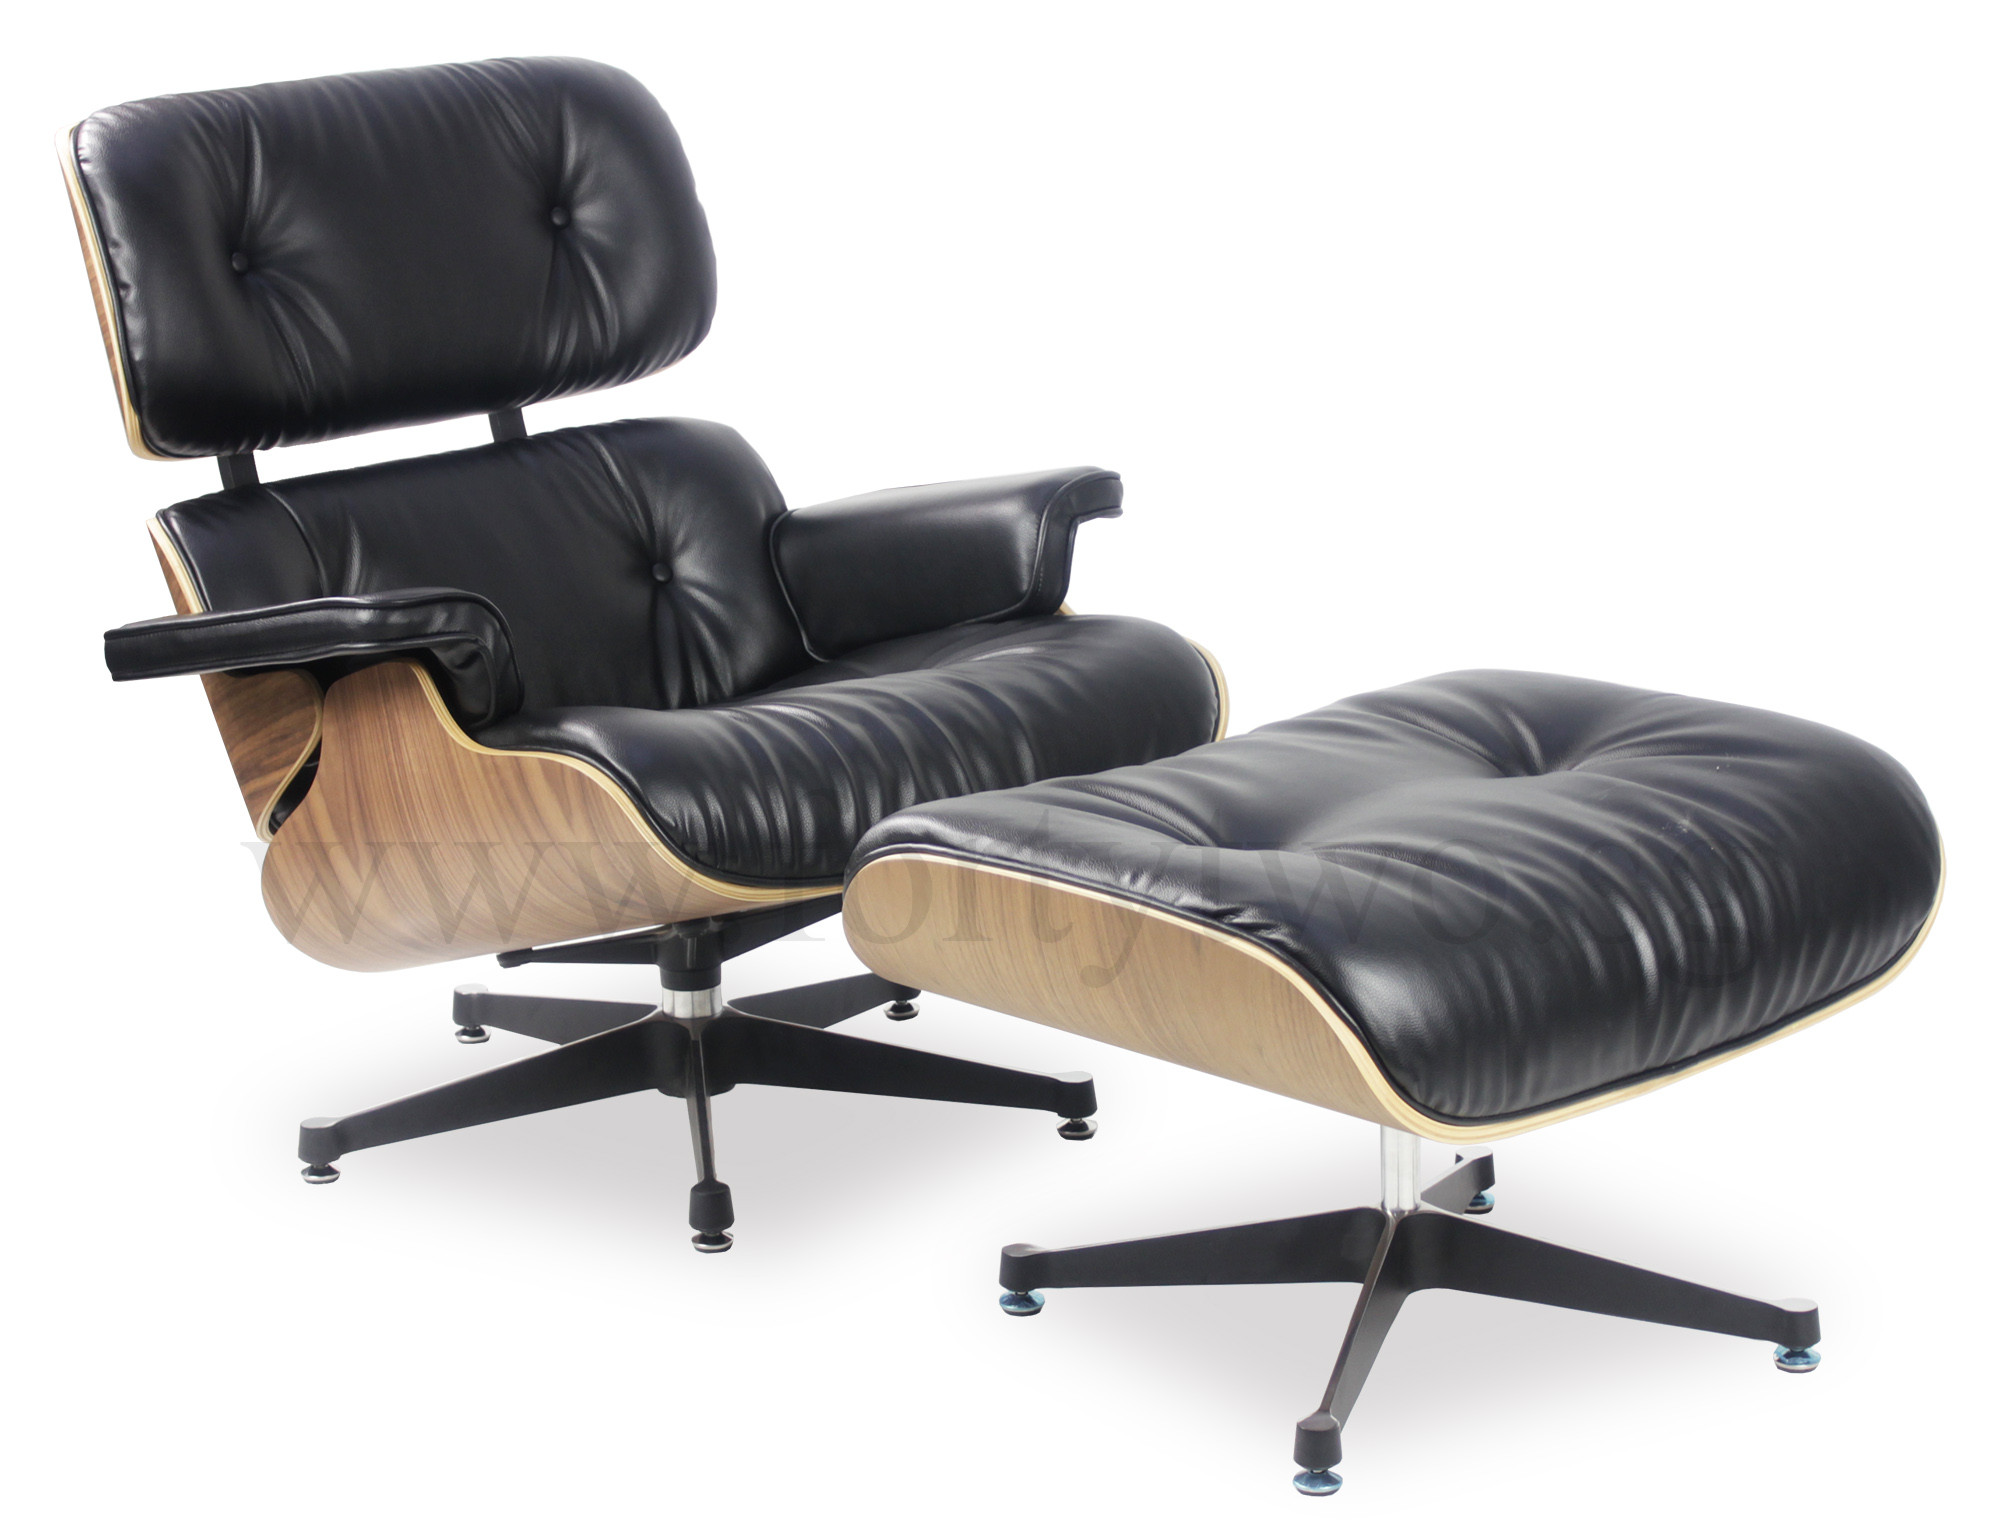 Eames Replica Designer Replica Eames Lounge Chair Black Leather